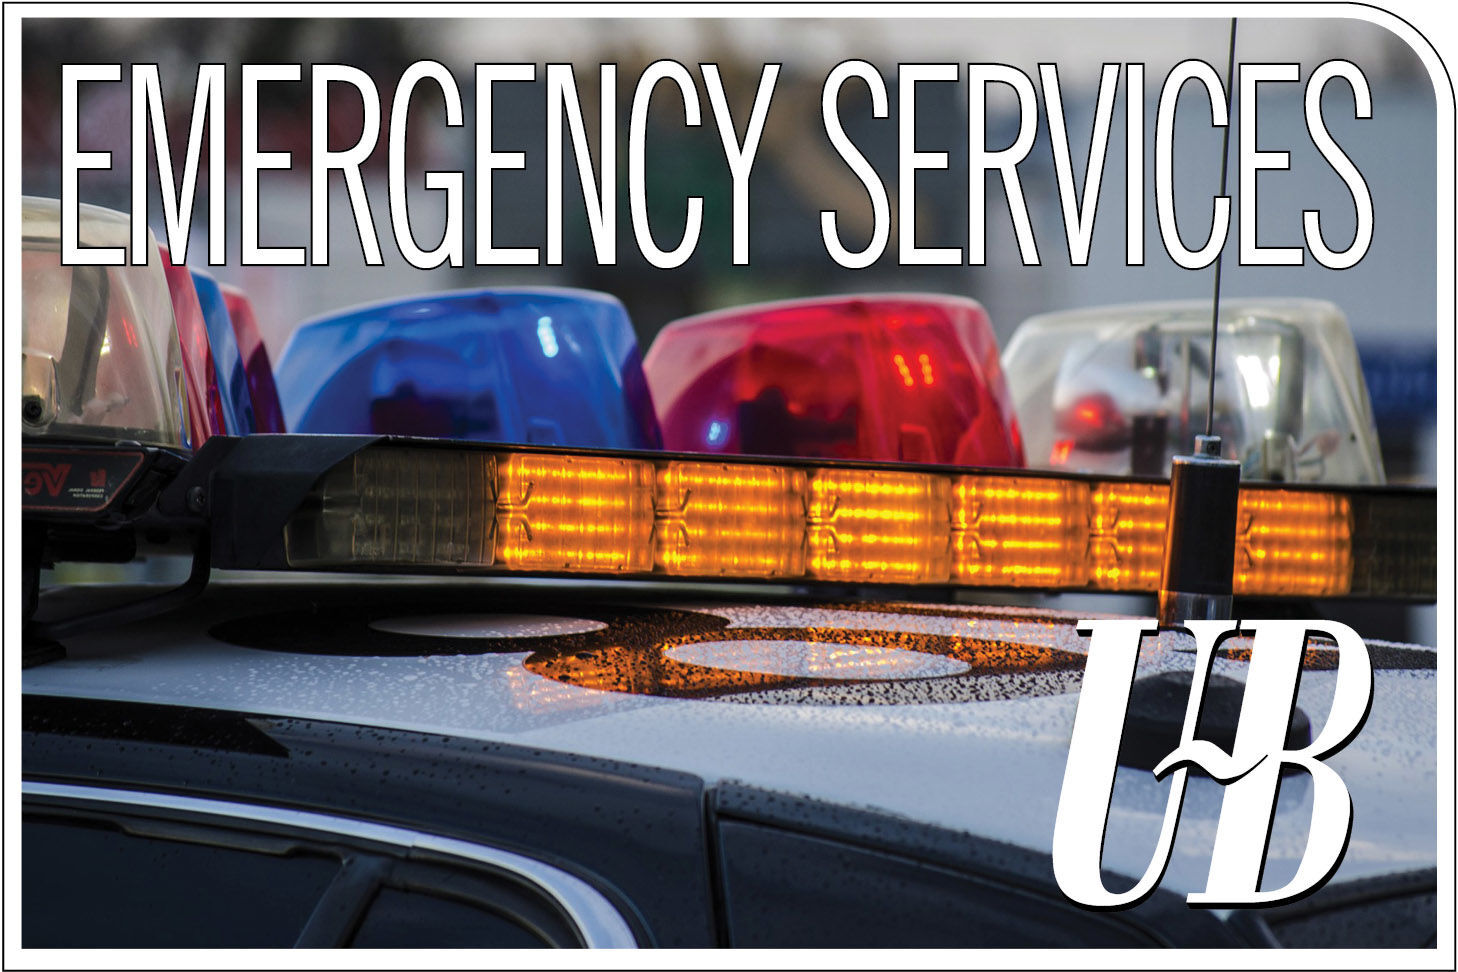 Emergency Services - 10/30/20